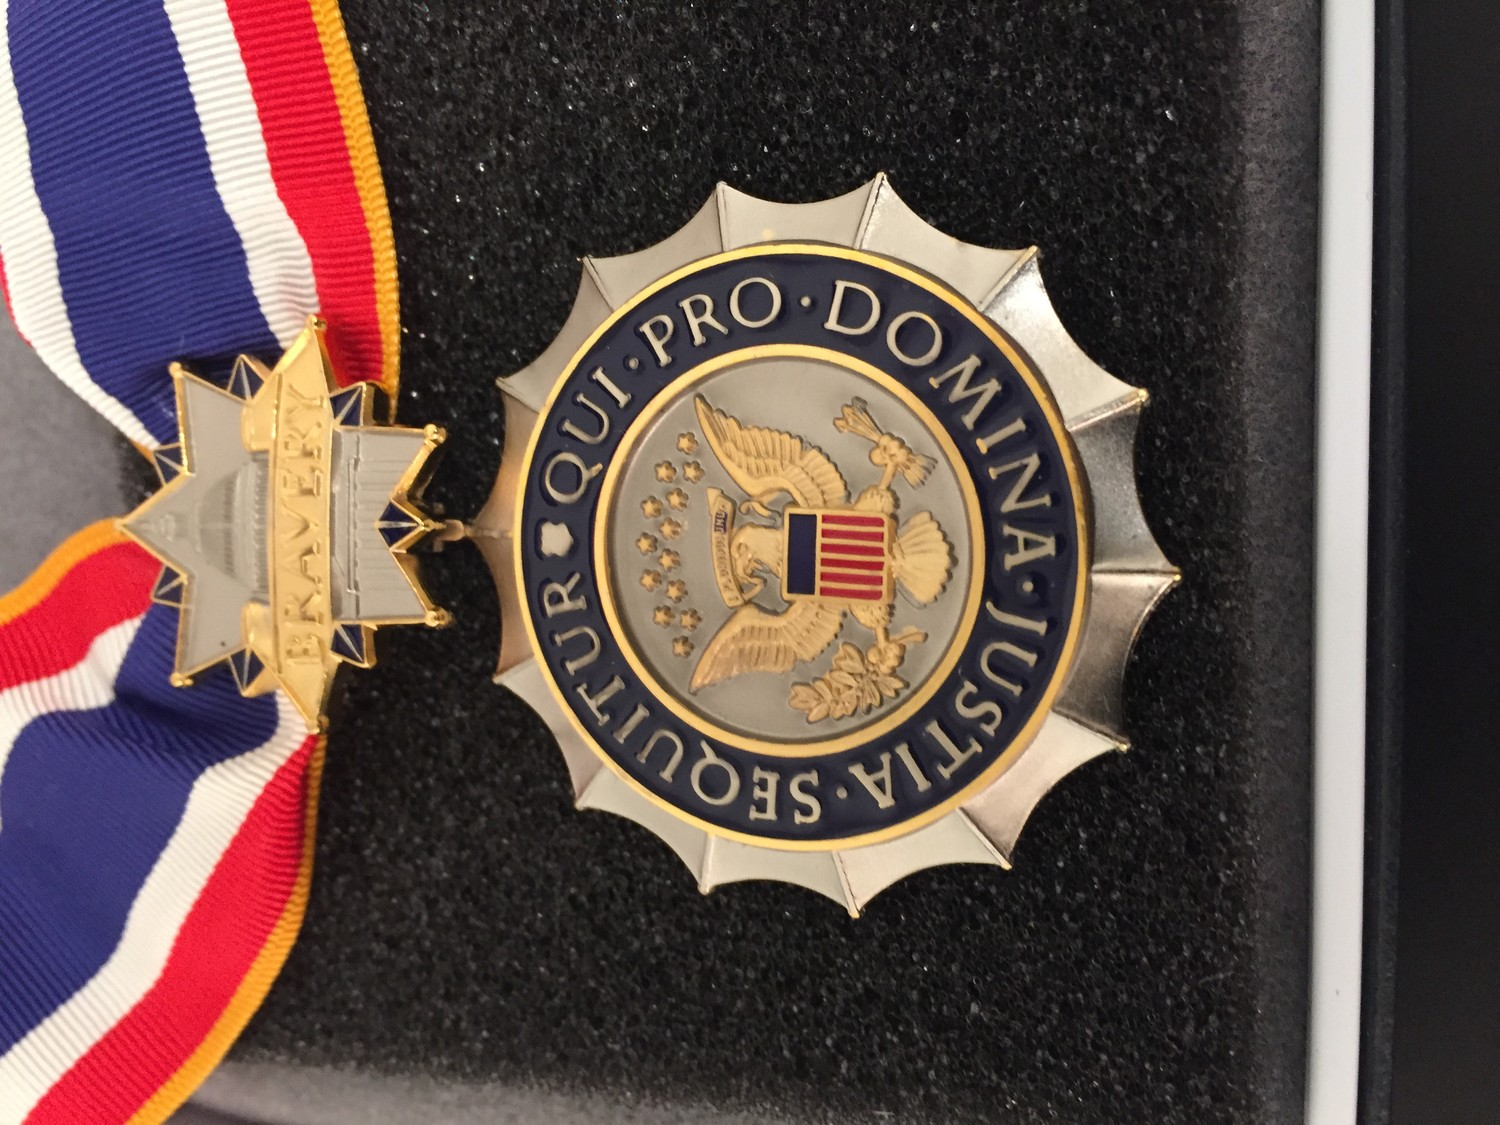 The Congressional Badge of Bravery was created in 2008 to recognize law enforcement officials who demonstrate exceptional bravery.